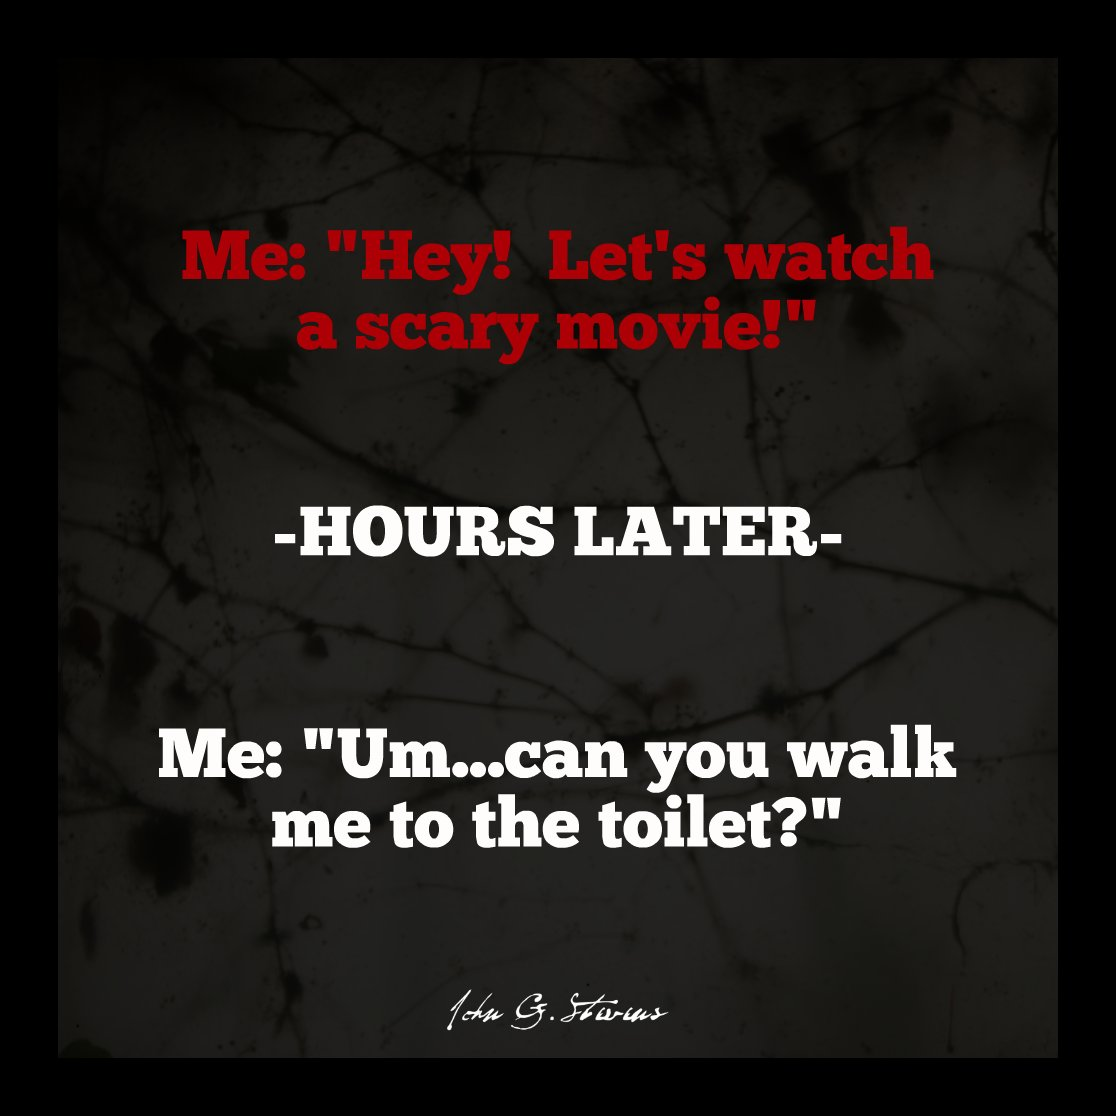 What movie makes you do this?    #JohnGStevens #JGS #Humor #ScaryMovie pic.twitter.com/hQrBZCS7NO